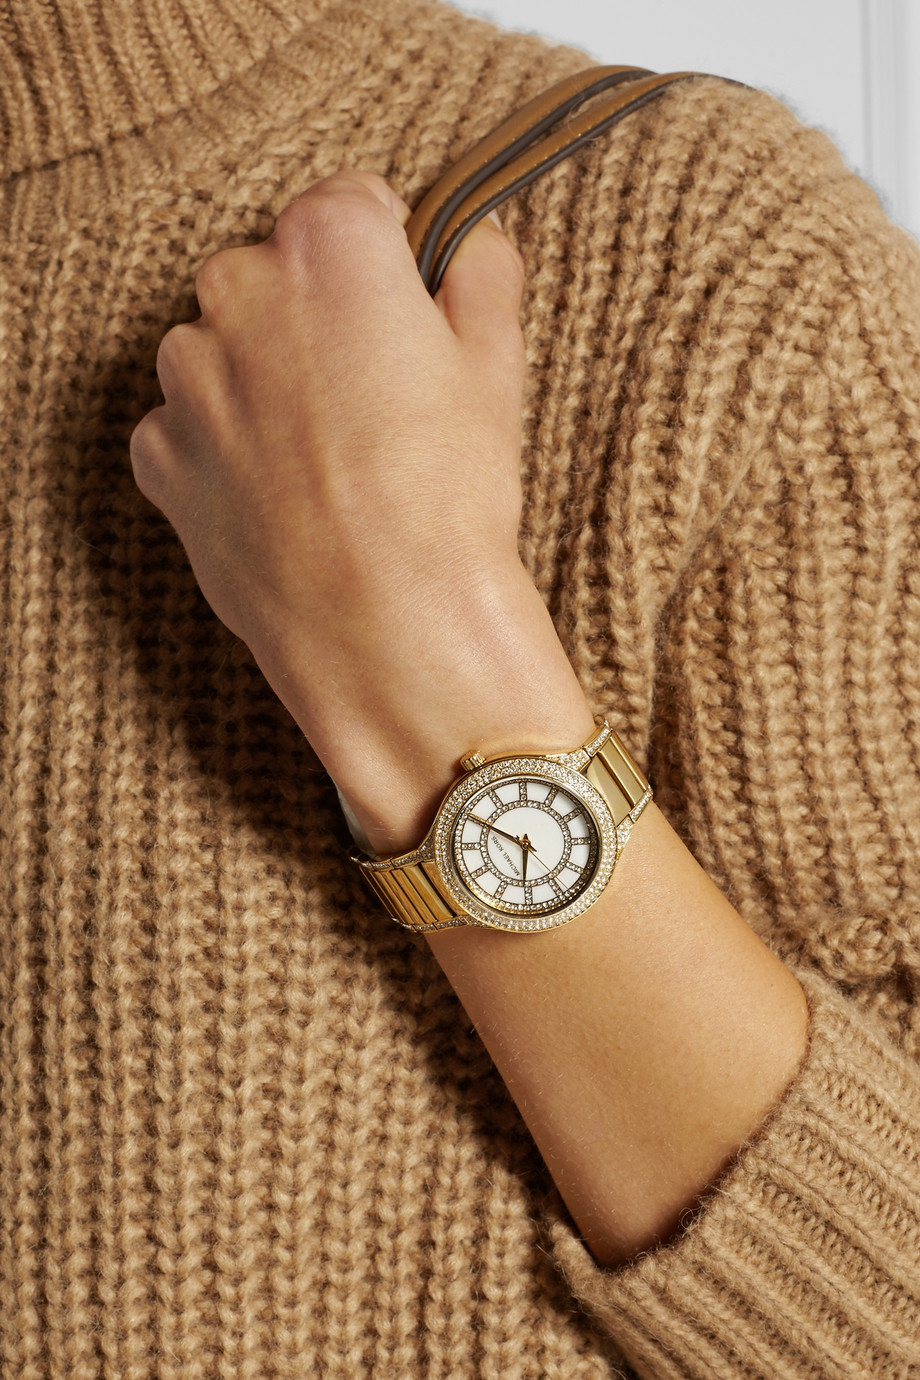 2542bbebd55f Lyst - Michael Kors Kerry Crystal-Embellished Gold-Tone Watch in ...